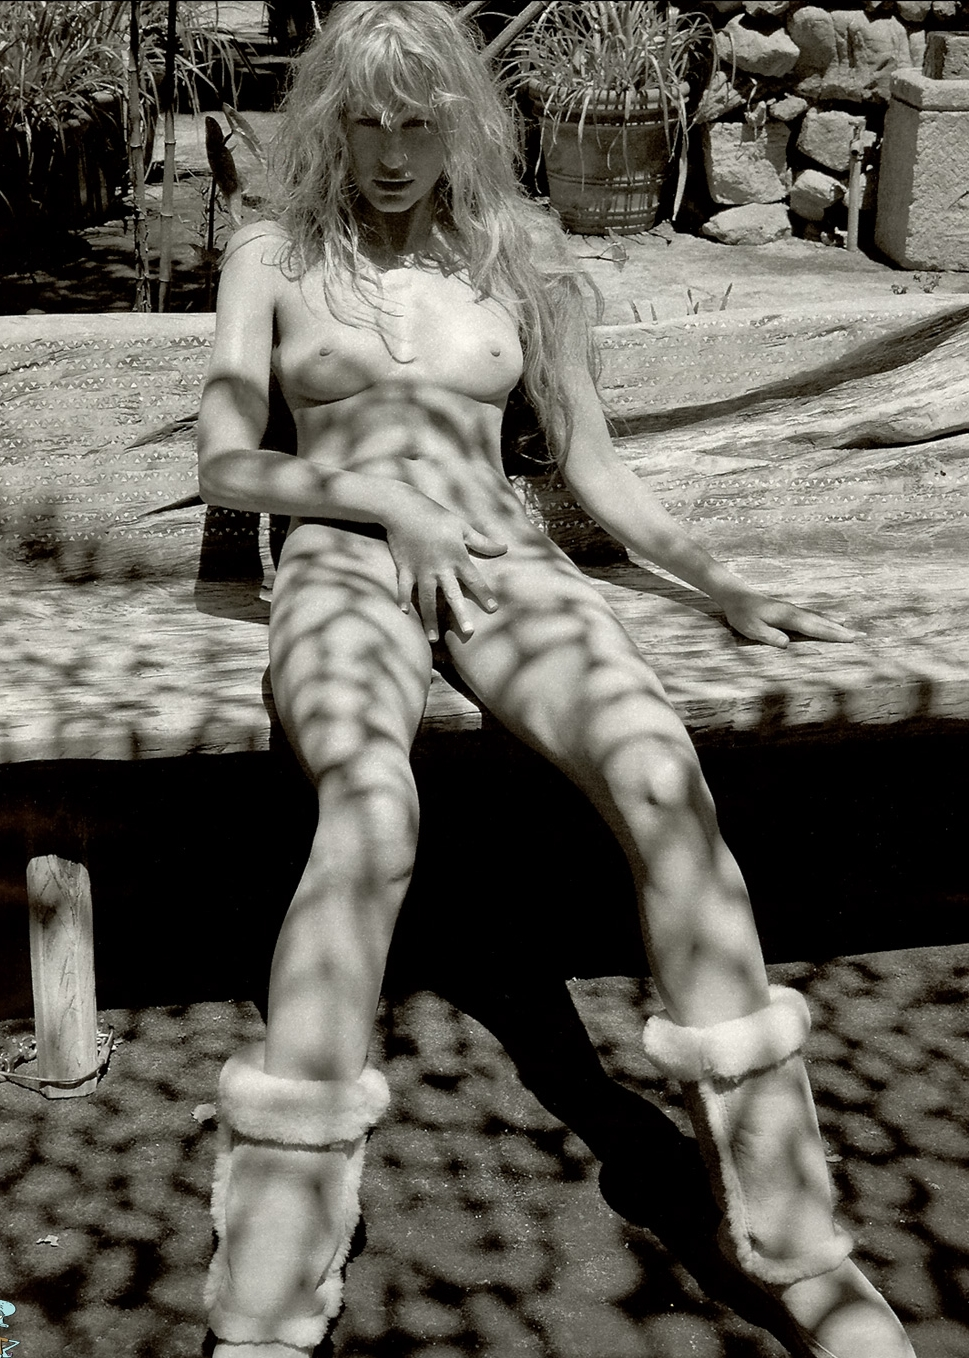 Daryl hannah naked pictures-3700